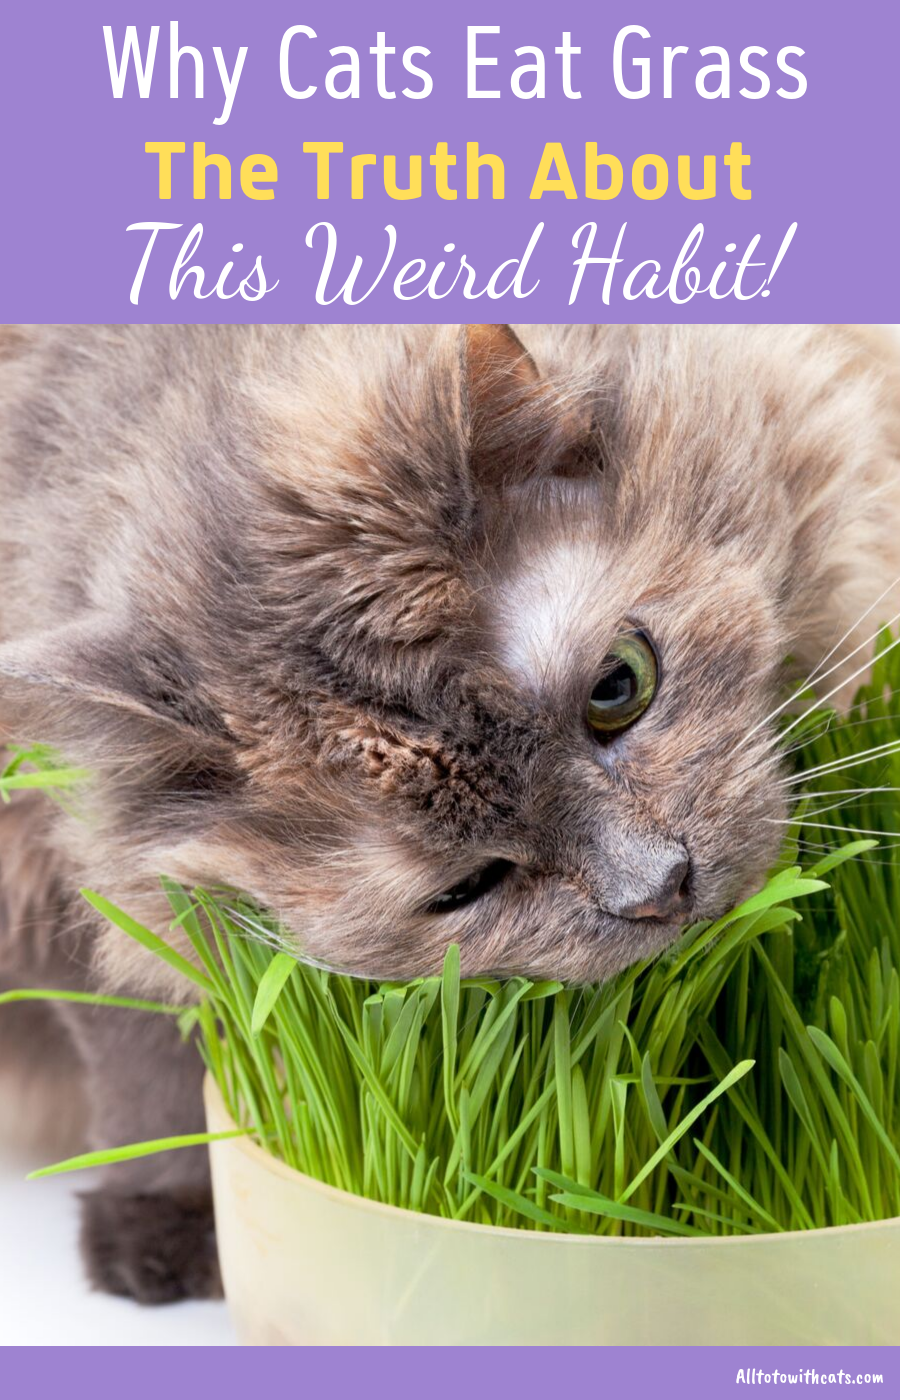 Why Do Cats Eat Grass? (The Truth Behind This Weird Habit